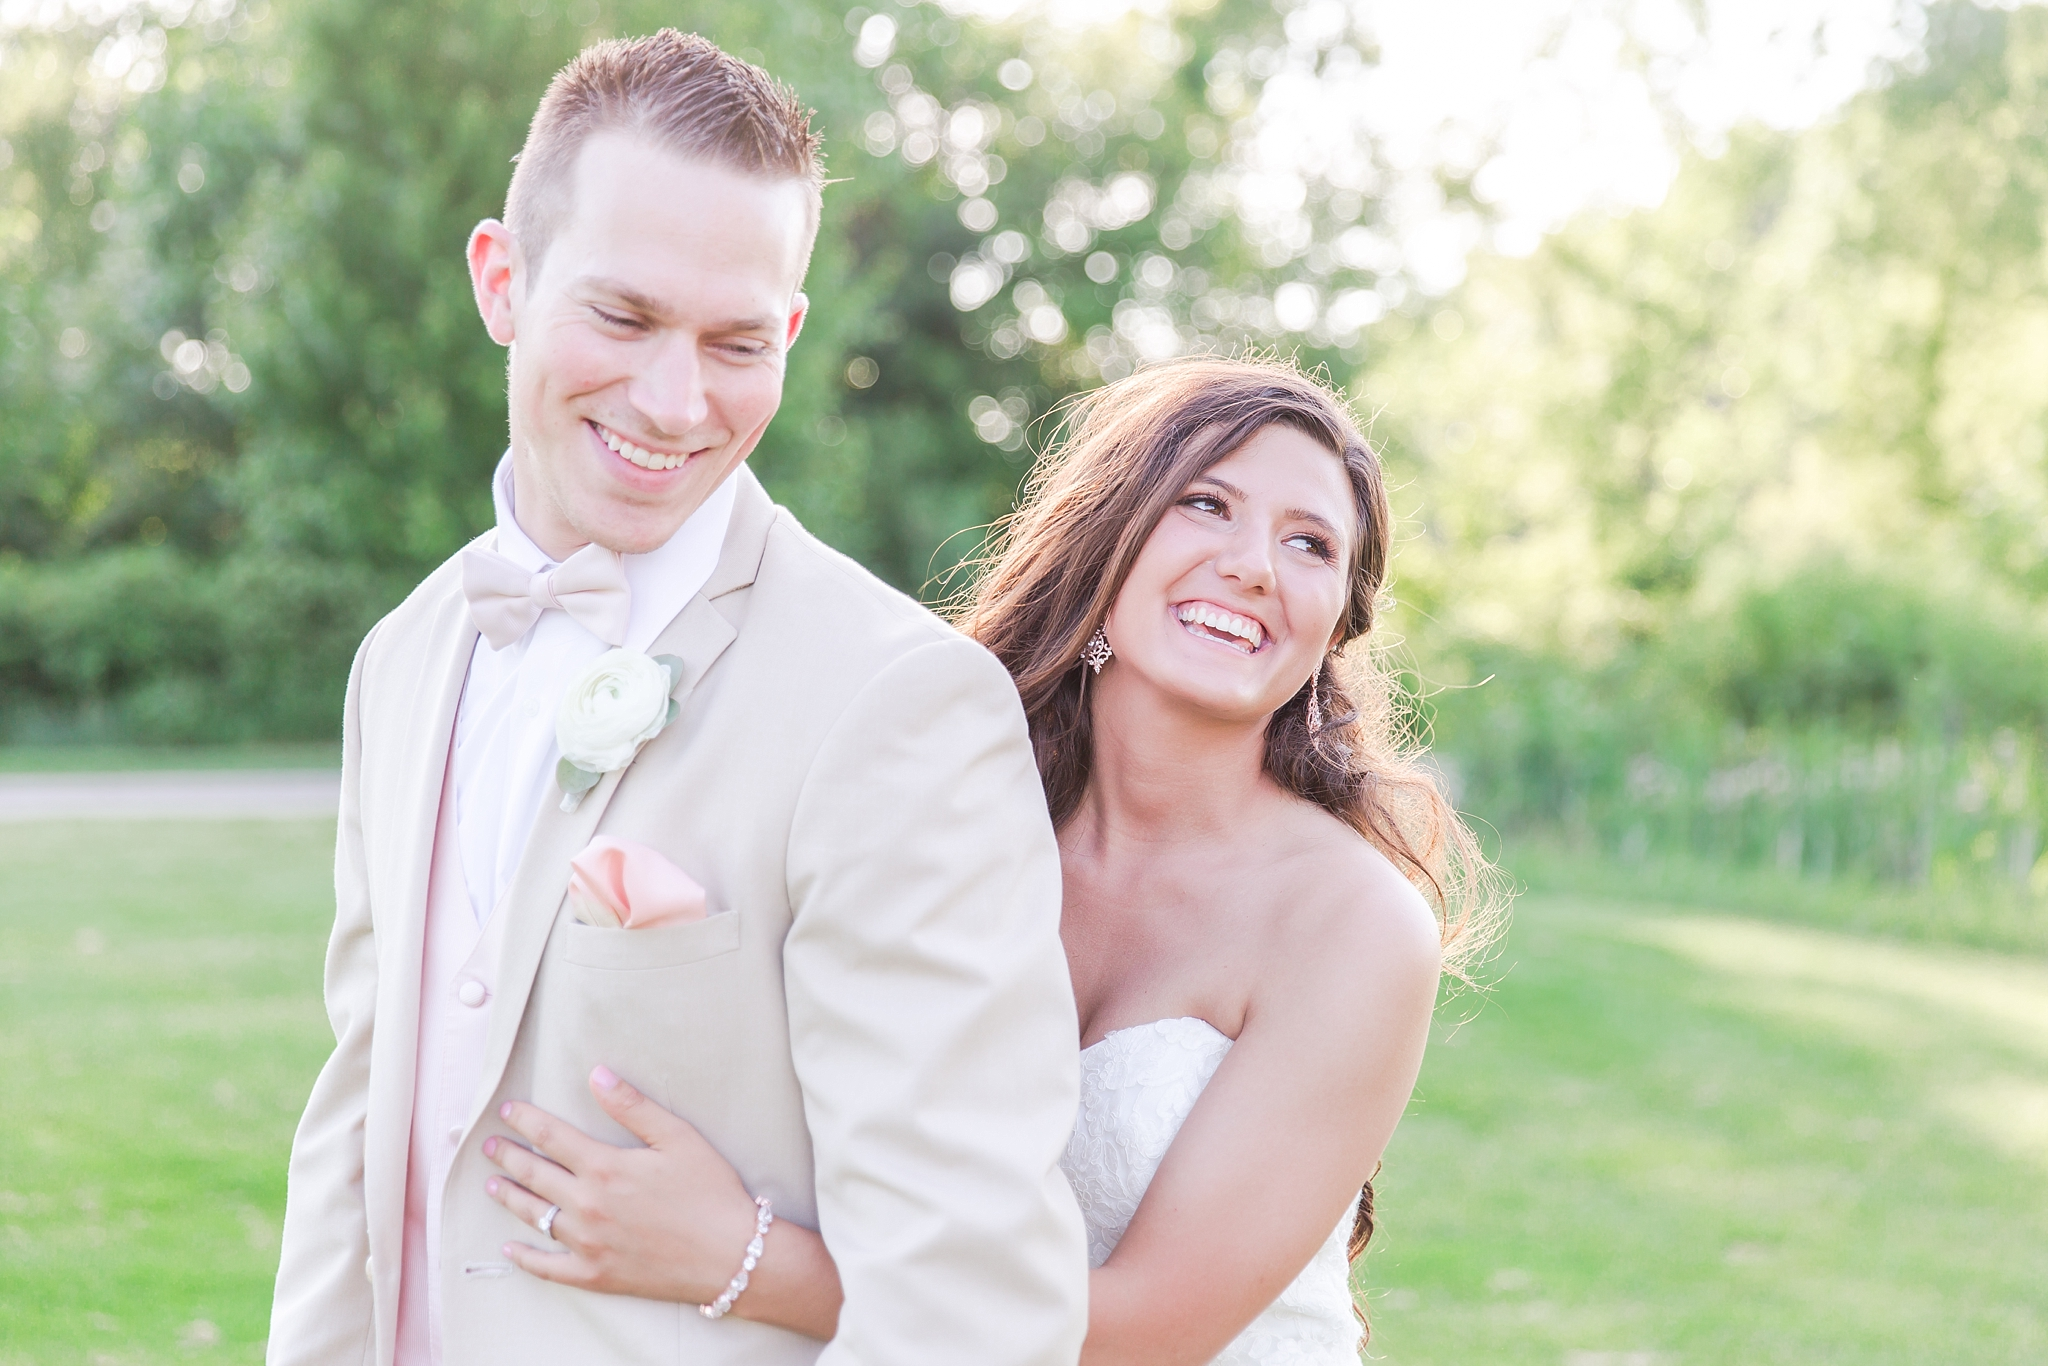 candid-timeless-wedding-photos-at-the-captains-club-in-grand-blanc-michigan-by-courtney-carolyn-photography_0057.jpg